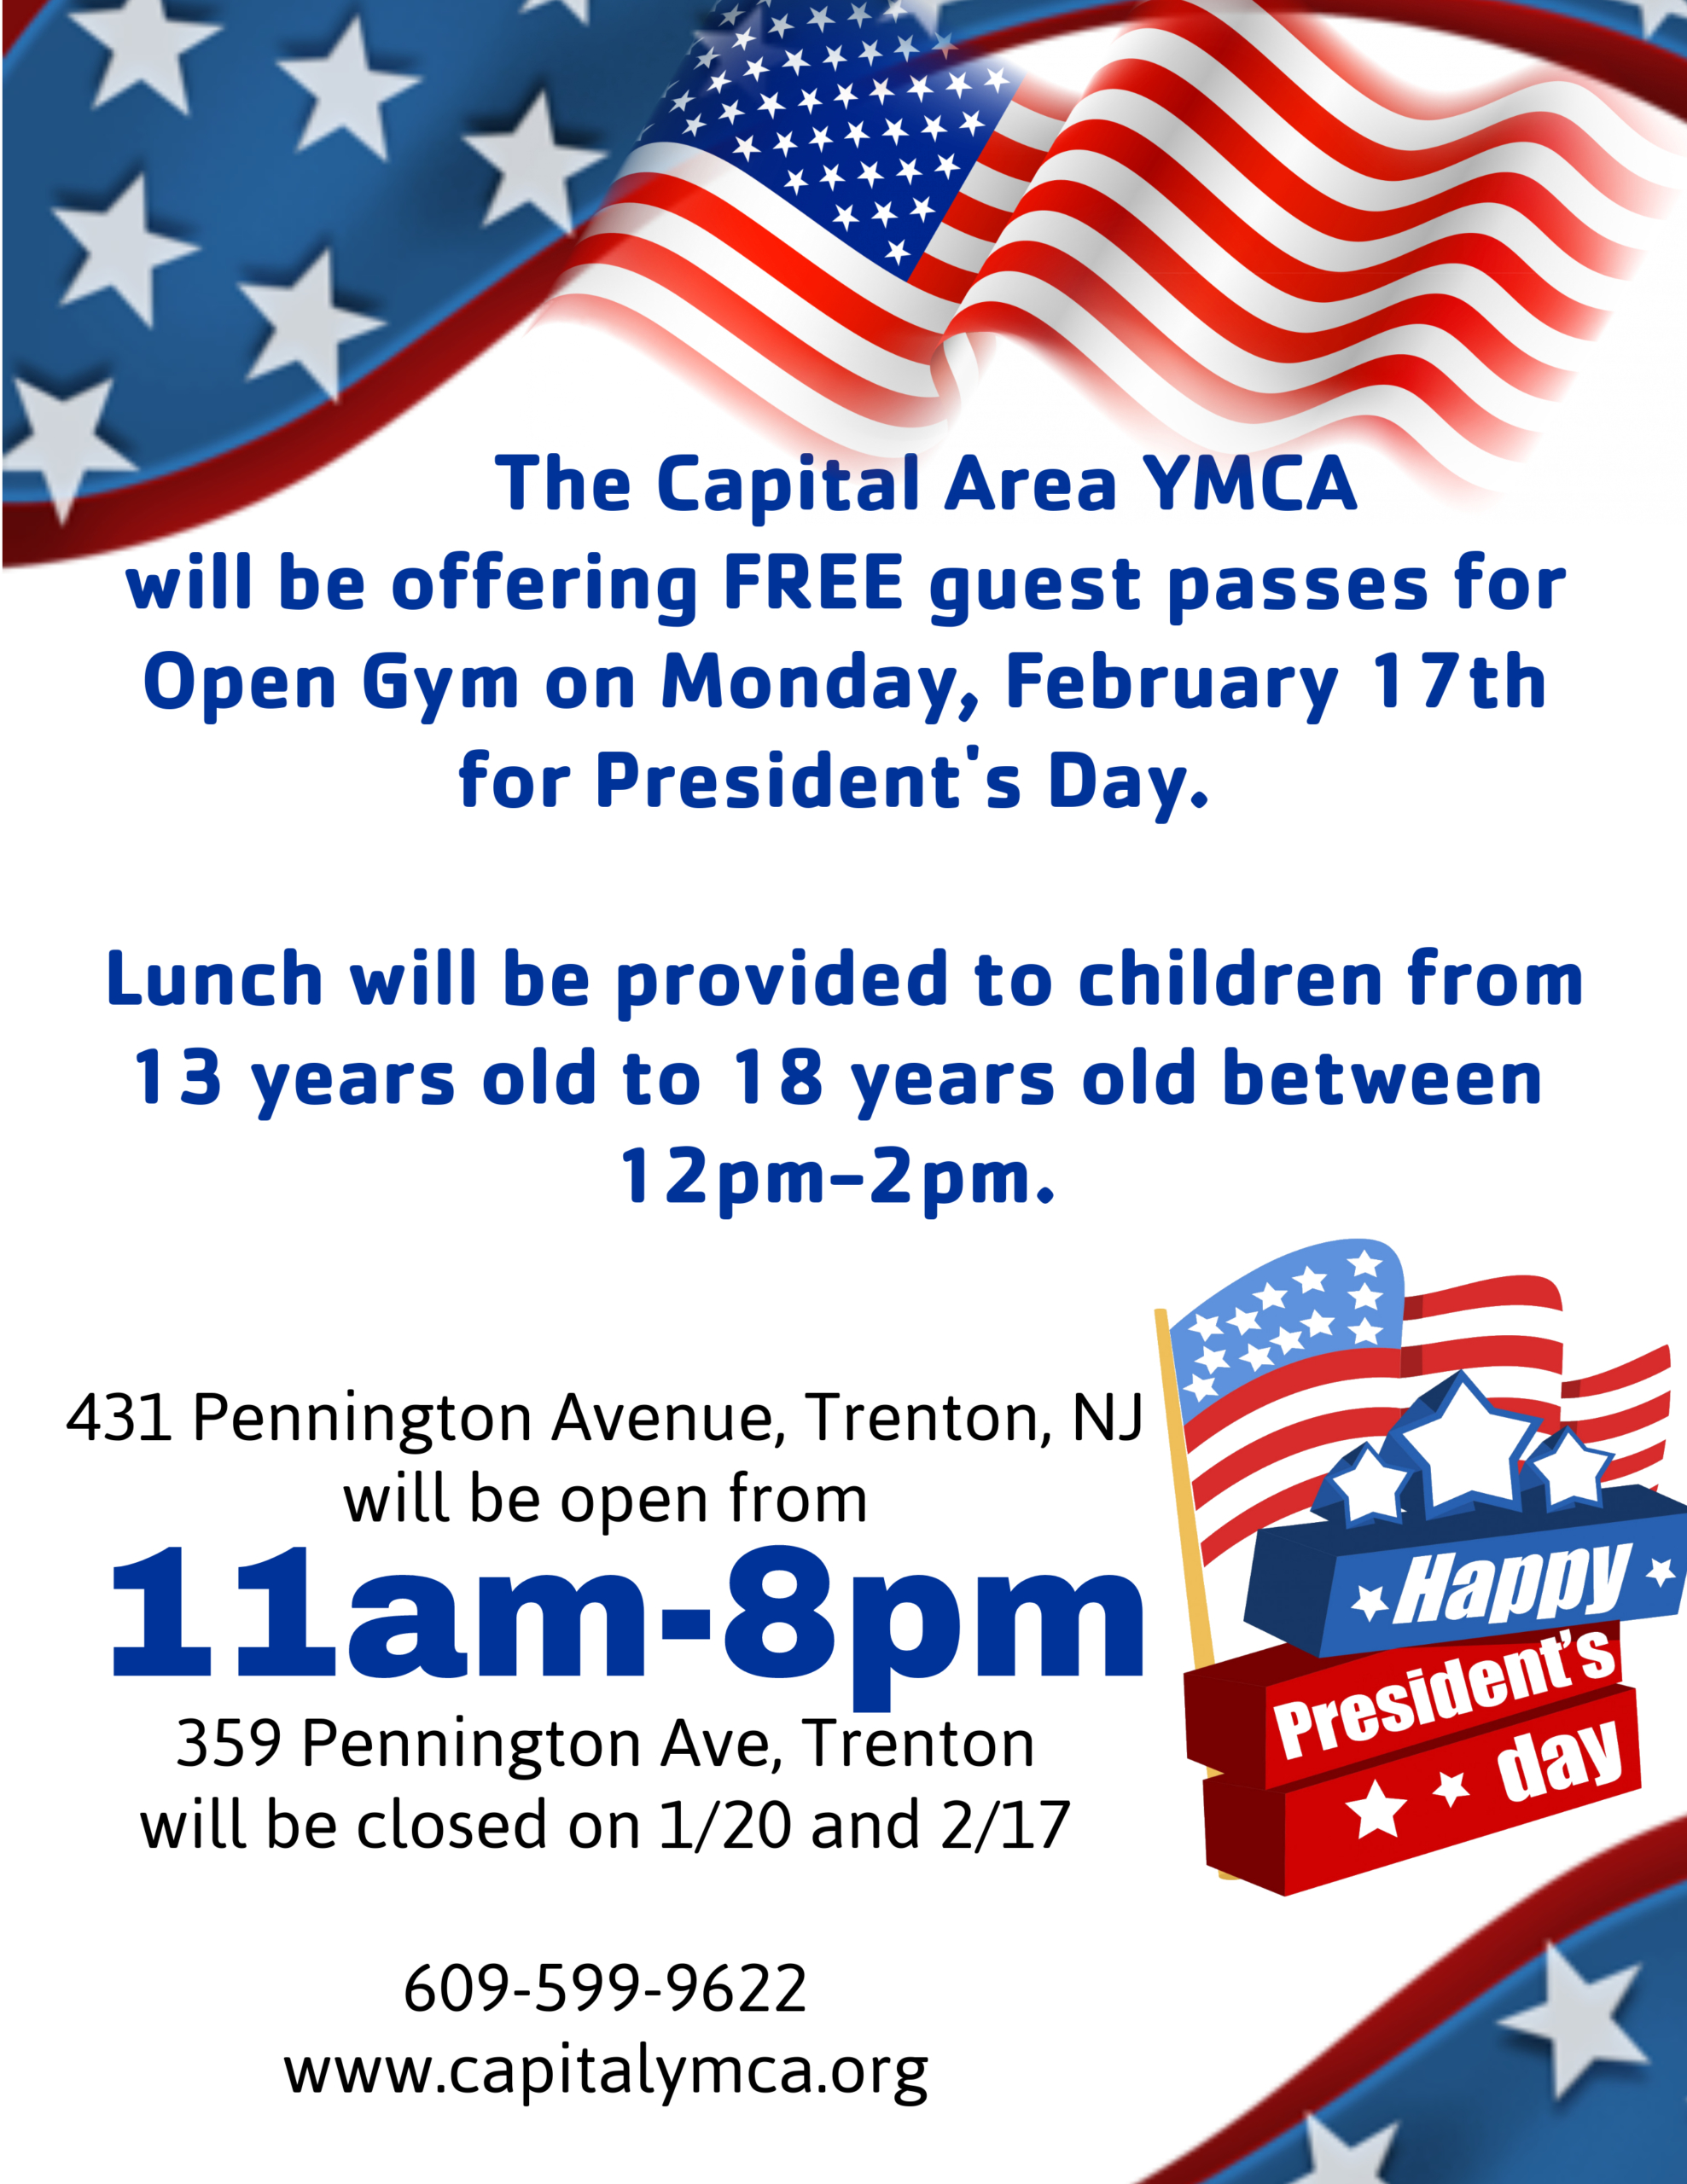 431 Pennington Open Presidents Day 11 am- 8pm -  359 Pennington, School Classes and Office Closed